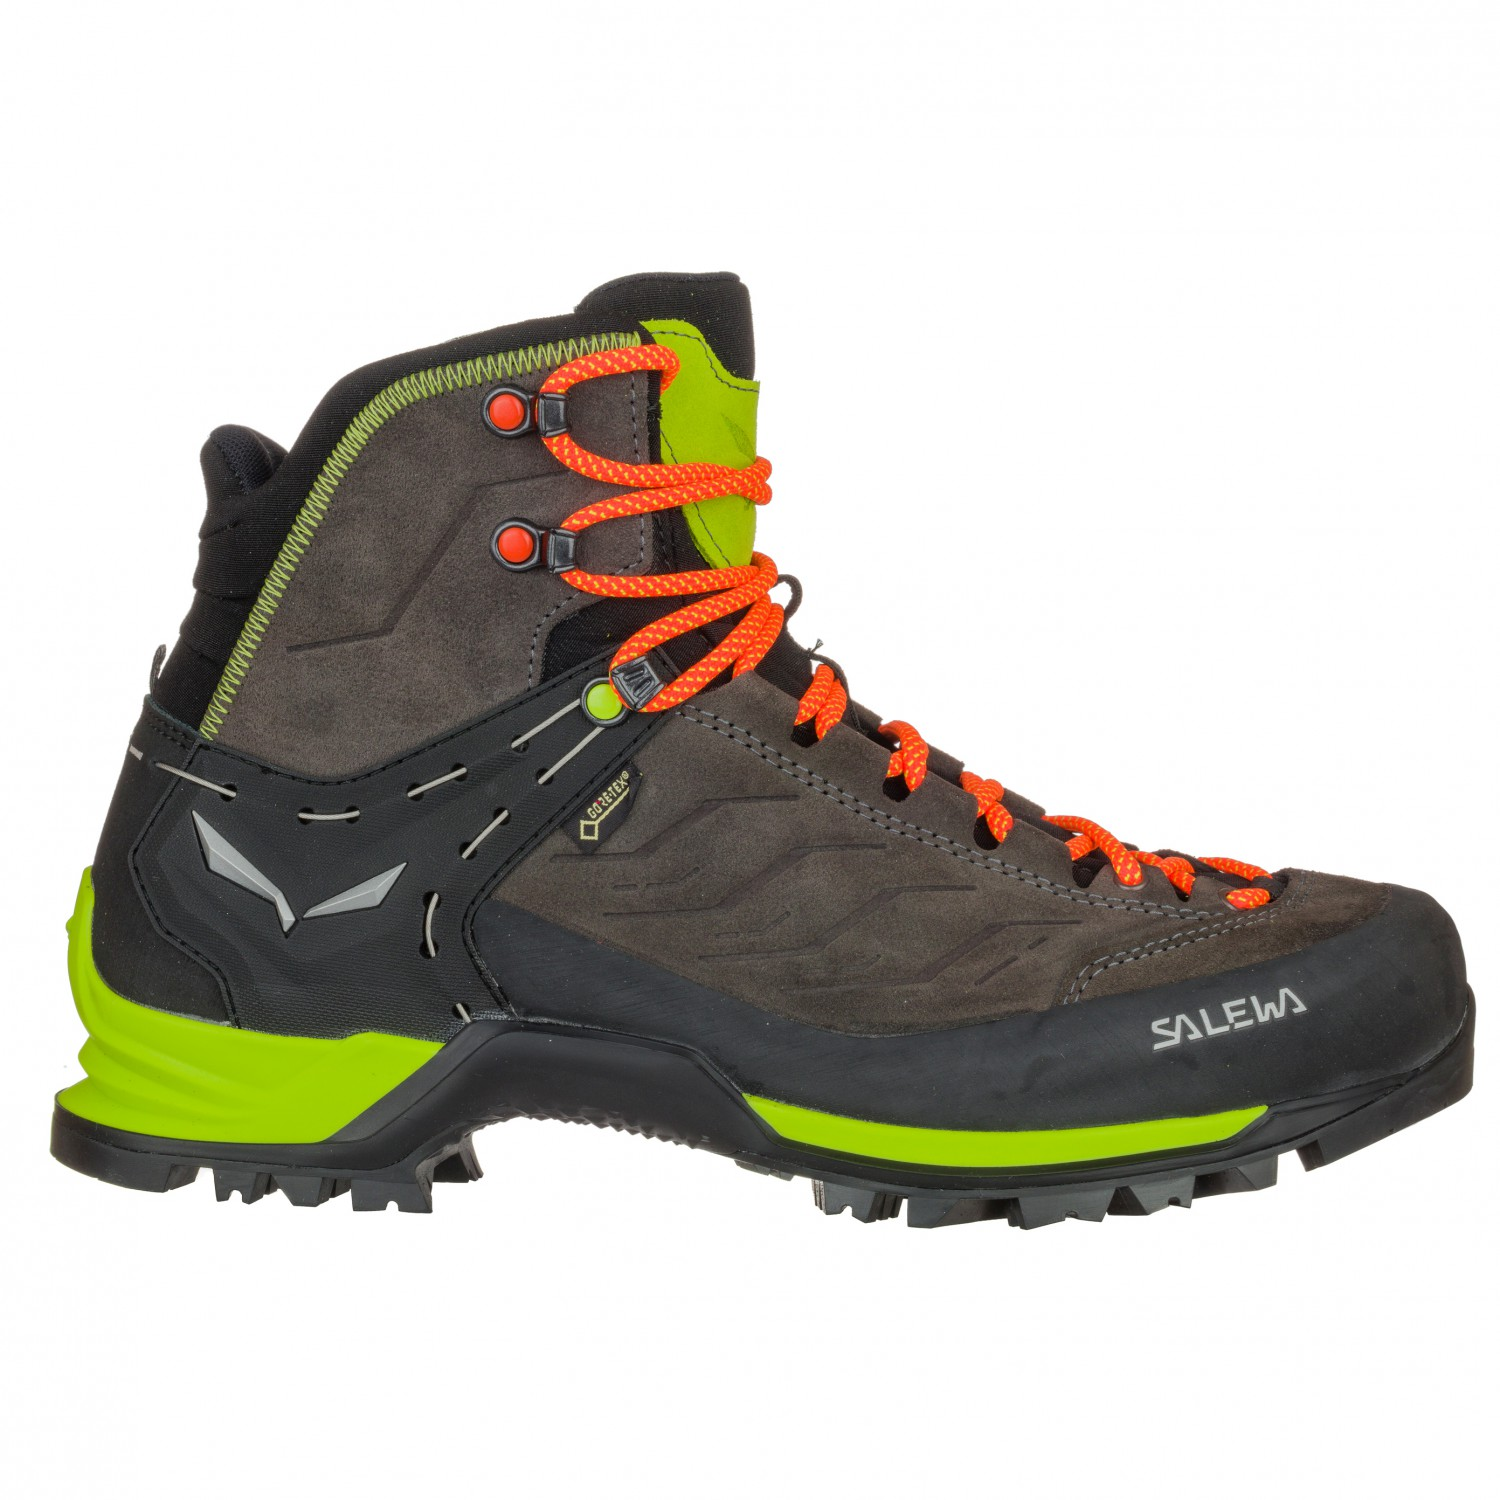 salewa mtn trainer mid gtx walking boots men 39 s free uk. Black Bedroom Furniture Sets. Home Design Ideas